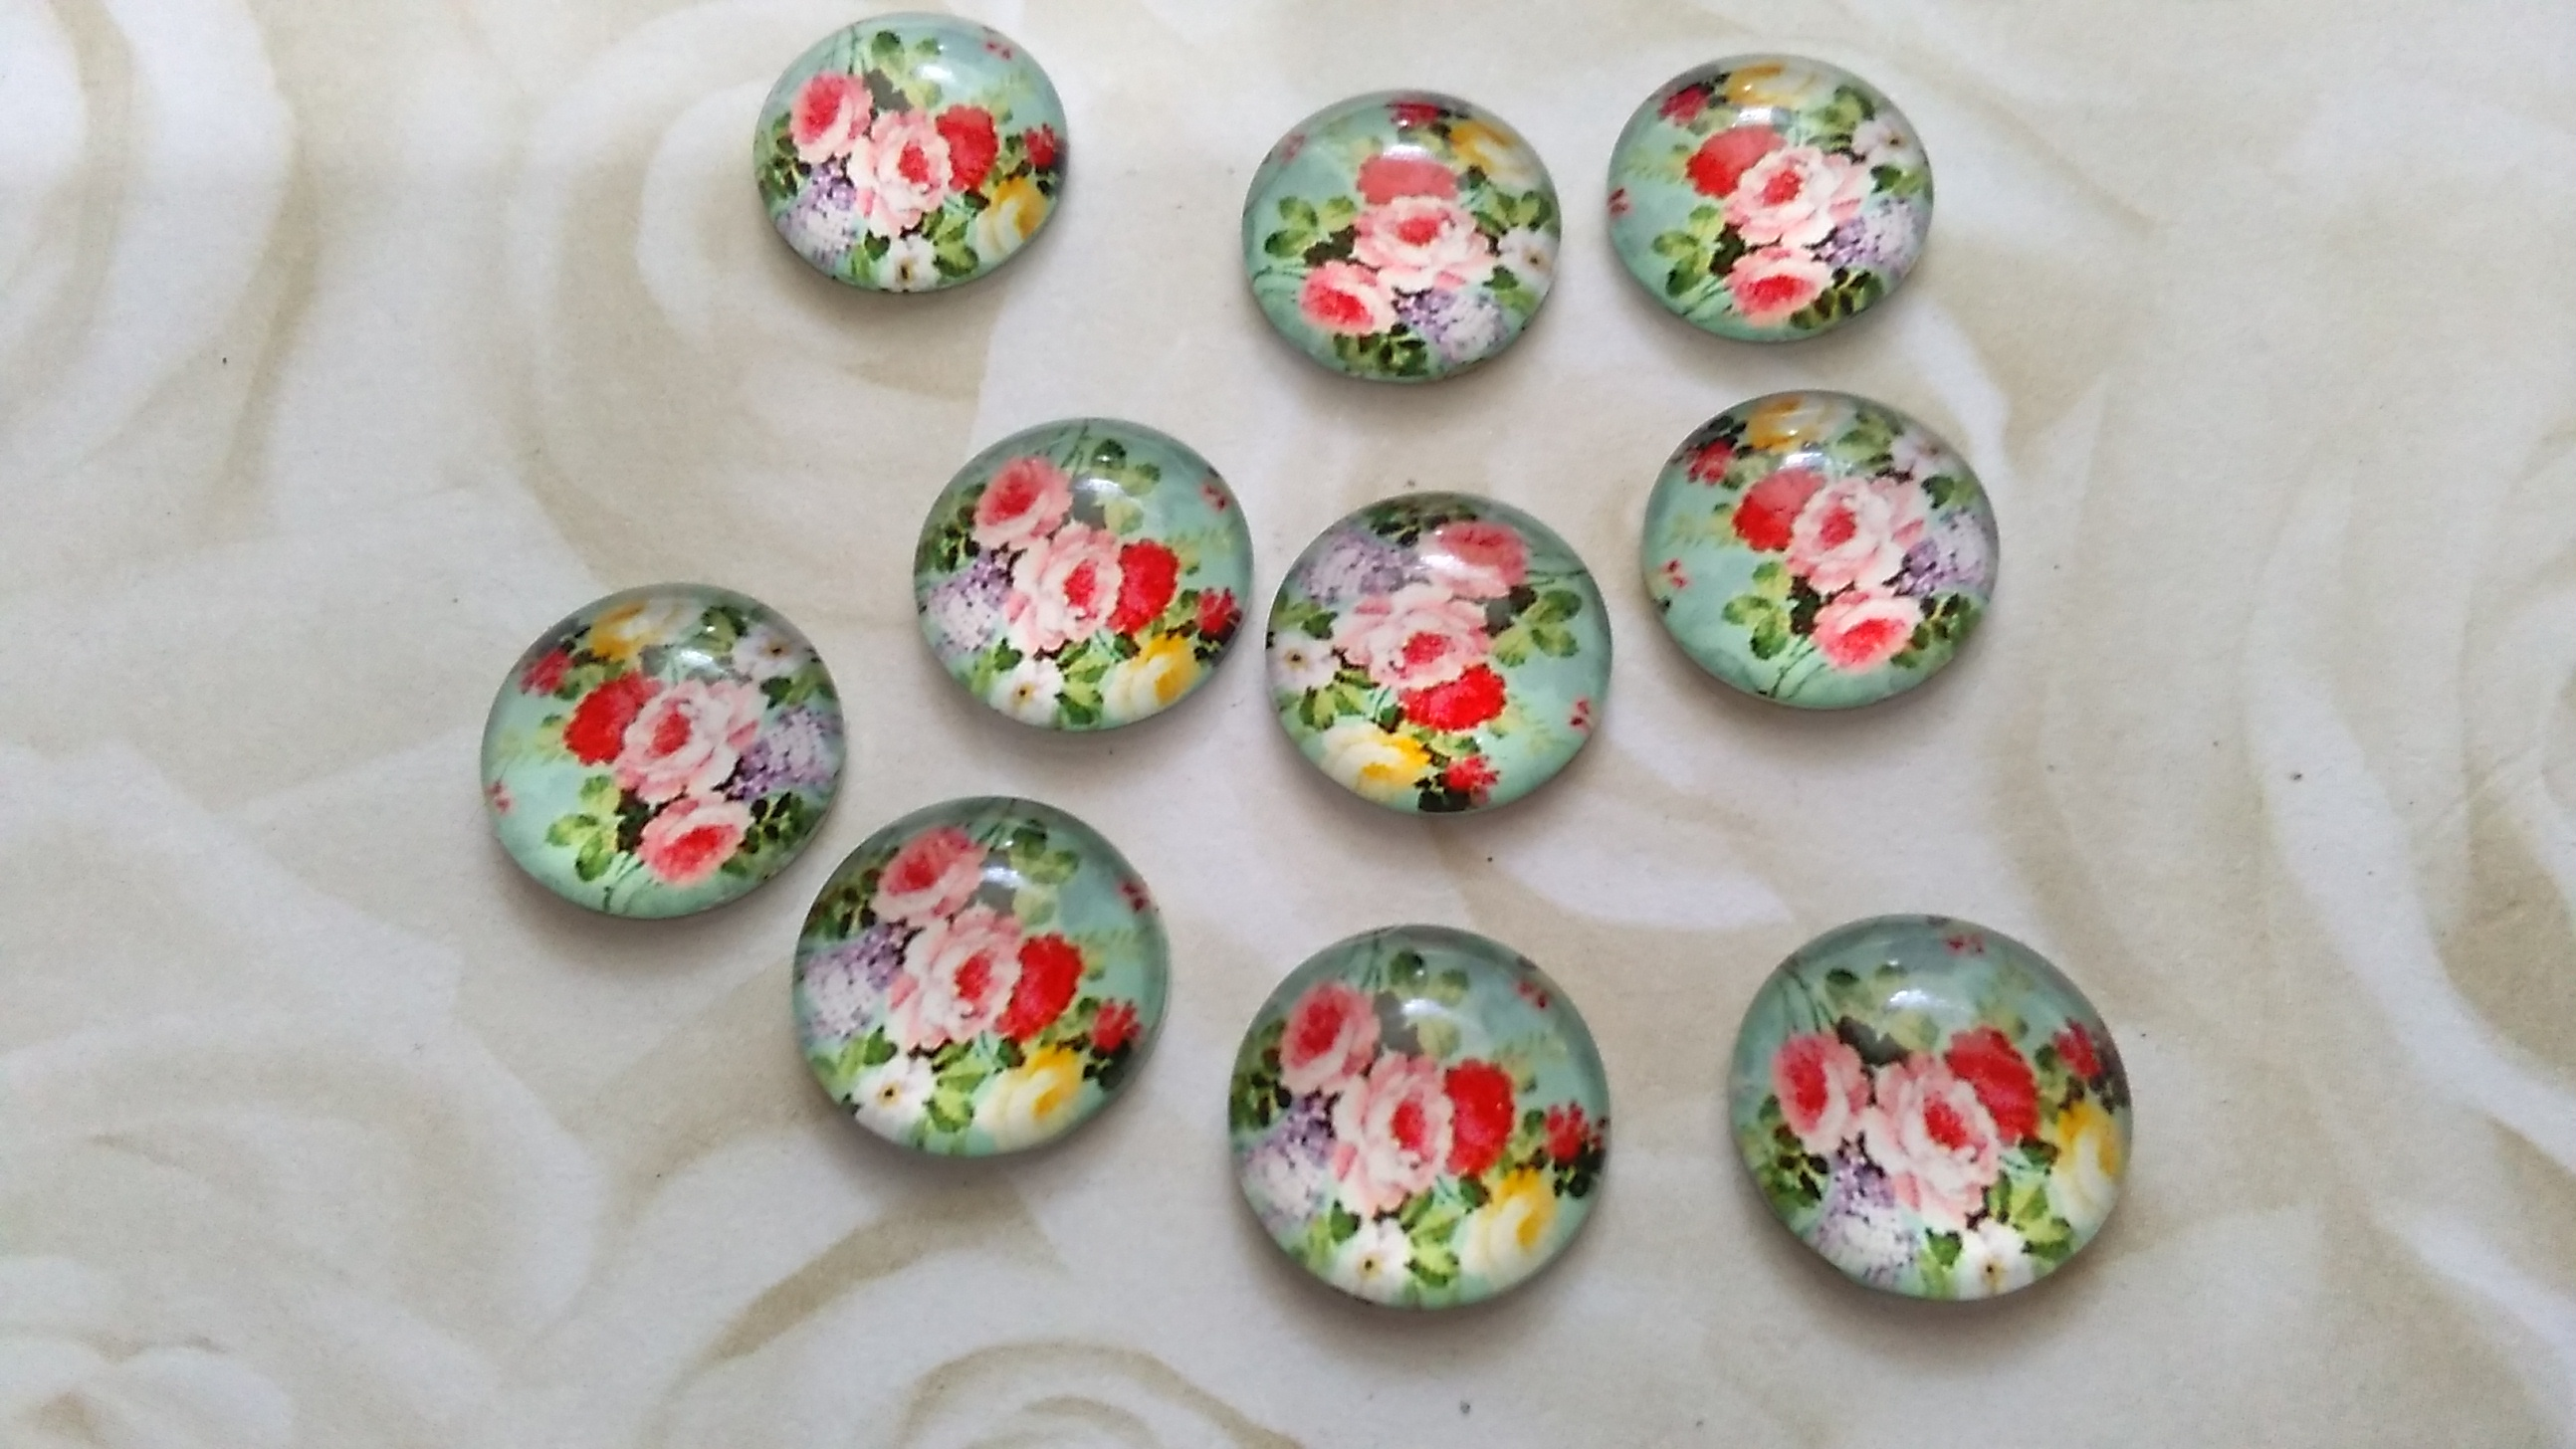 Glass Vintage Rose Image 12mm Cabochons